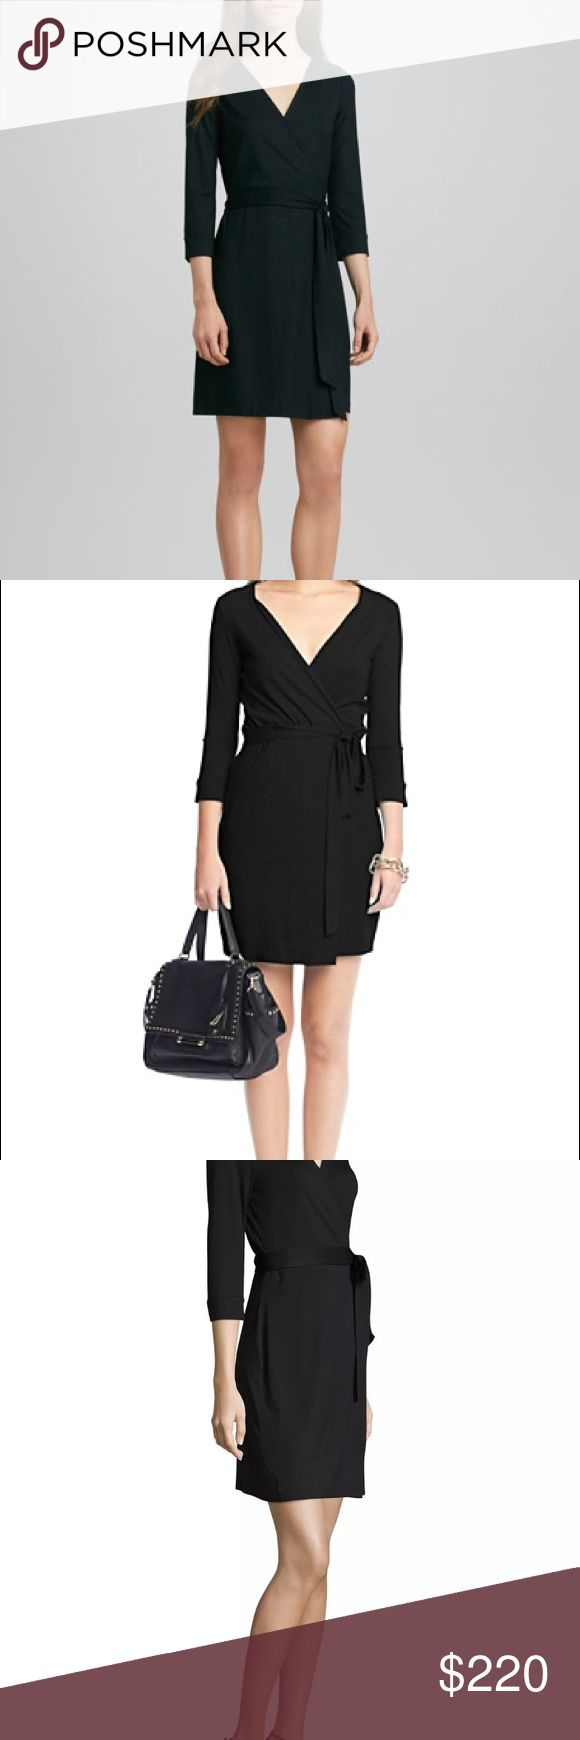 """Diane Von furstenberg Julian wrap dress two mini Up for sale one Diane von Furstenberg NEW JULIAN TWO Mini Matte Jersey Wrap Dress with retail TAGS ATTACHED - brand new and in perfect condition, size US14, UK18. Style # D779101E00. Color: BLACK. An effortless DVF wrap dress is cropped for a modern take on a signature silhouette. The crossover bodice forms a flattering V neckline, and a self-tie defines the waist. 3/4 sleeves. Unlined.  About 35"""" long True wrap style. V-neck. Three-quarter…"""